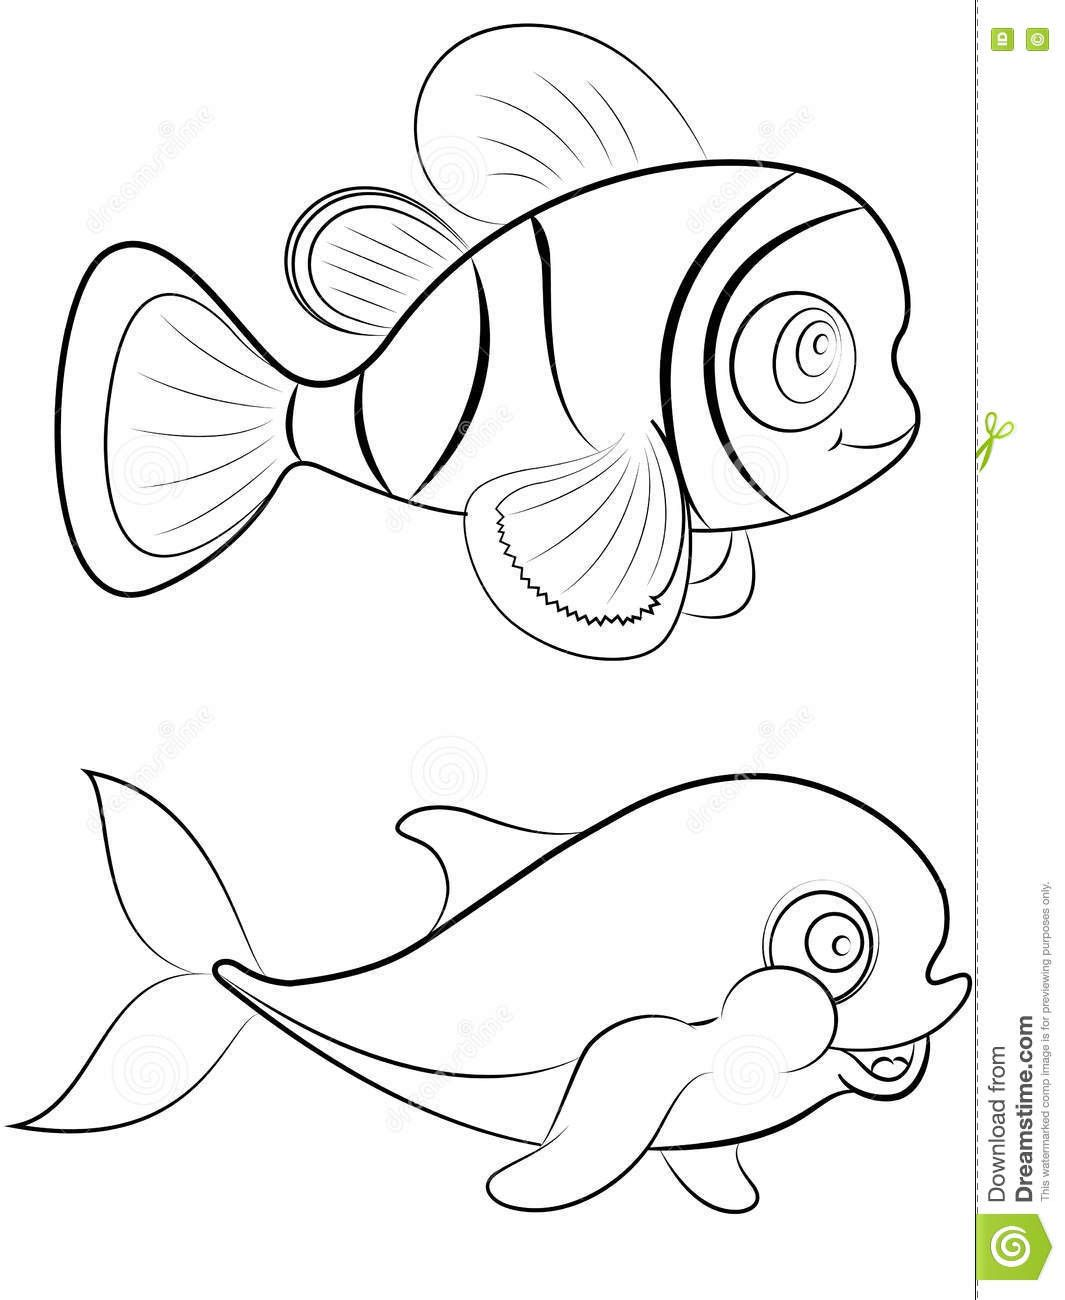 Clown Fish Coloring Page Youngandtae Com In 2020 Fish Coloring Page Coloring Pages Clown Fish